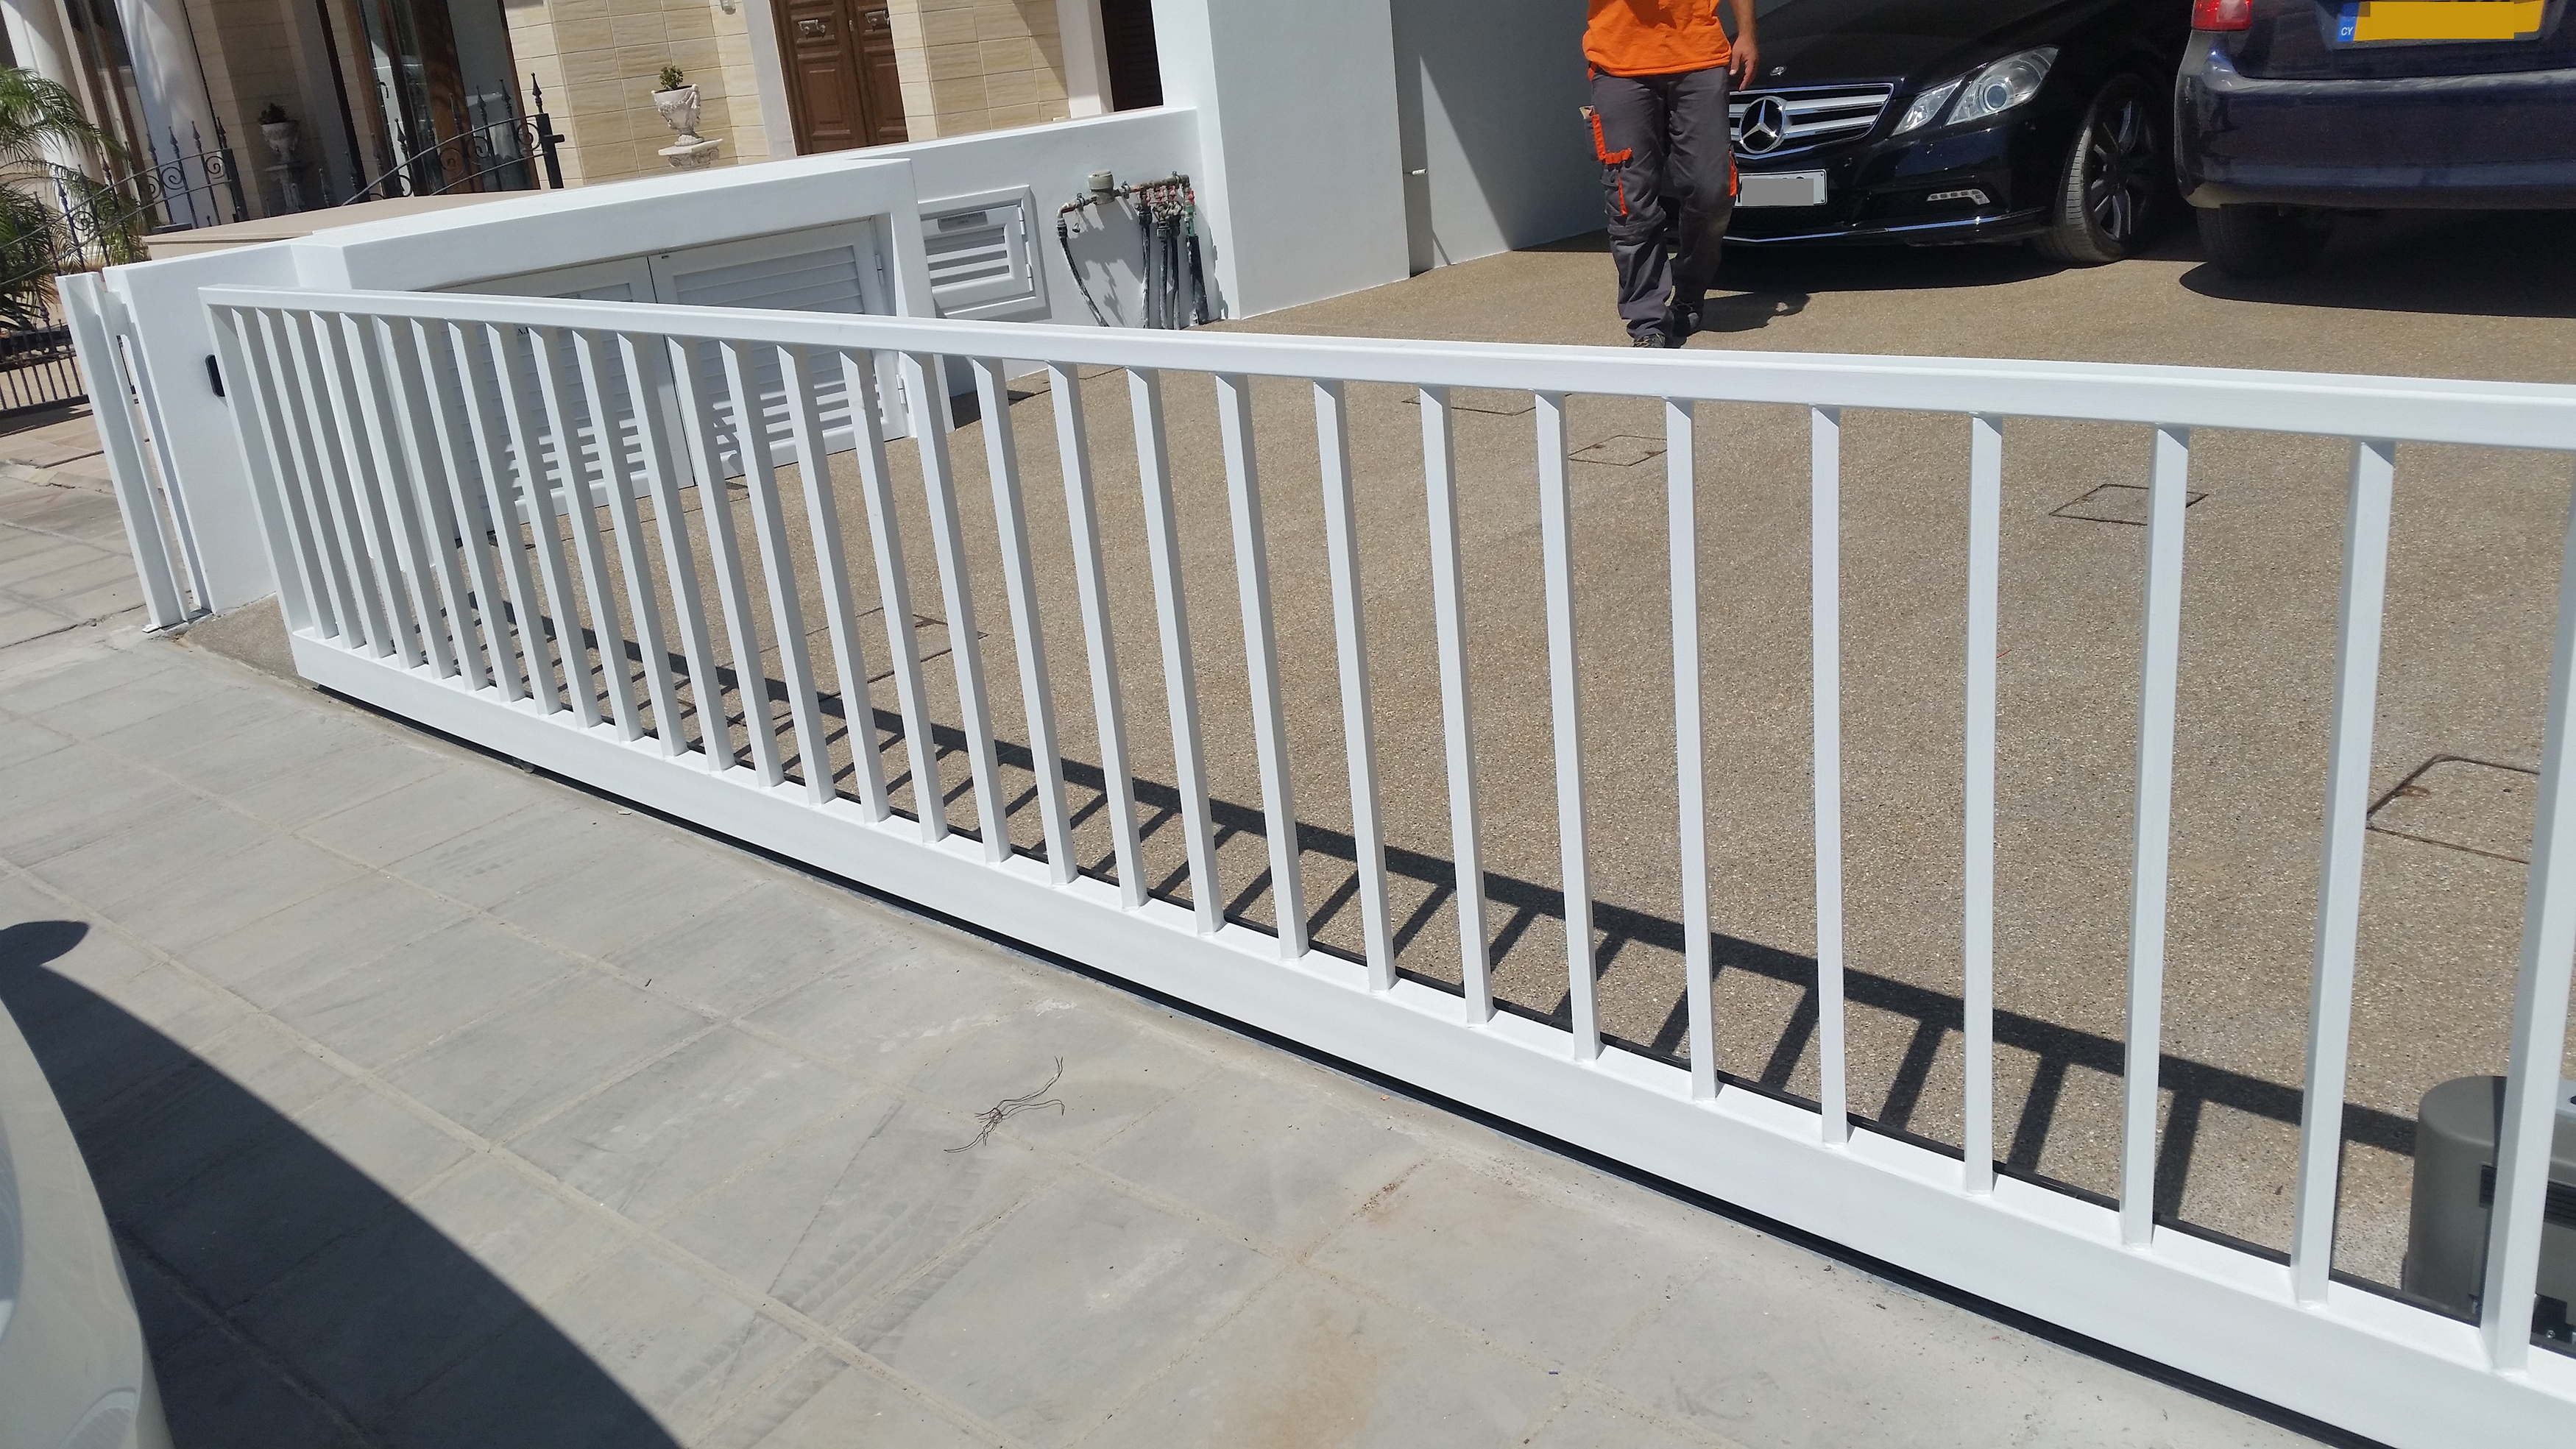 Somfy Sliding Gate In Action